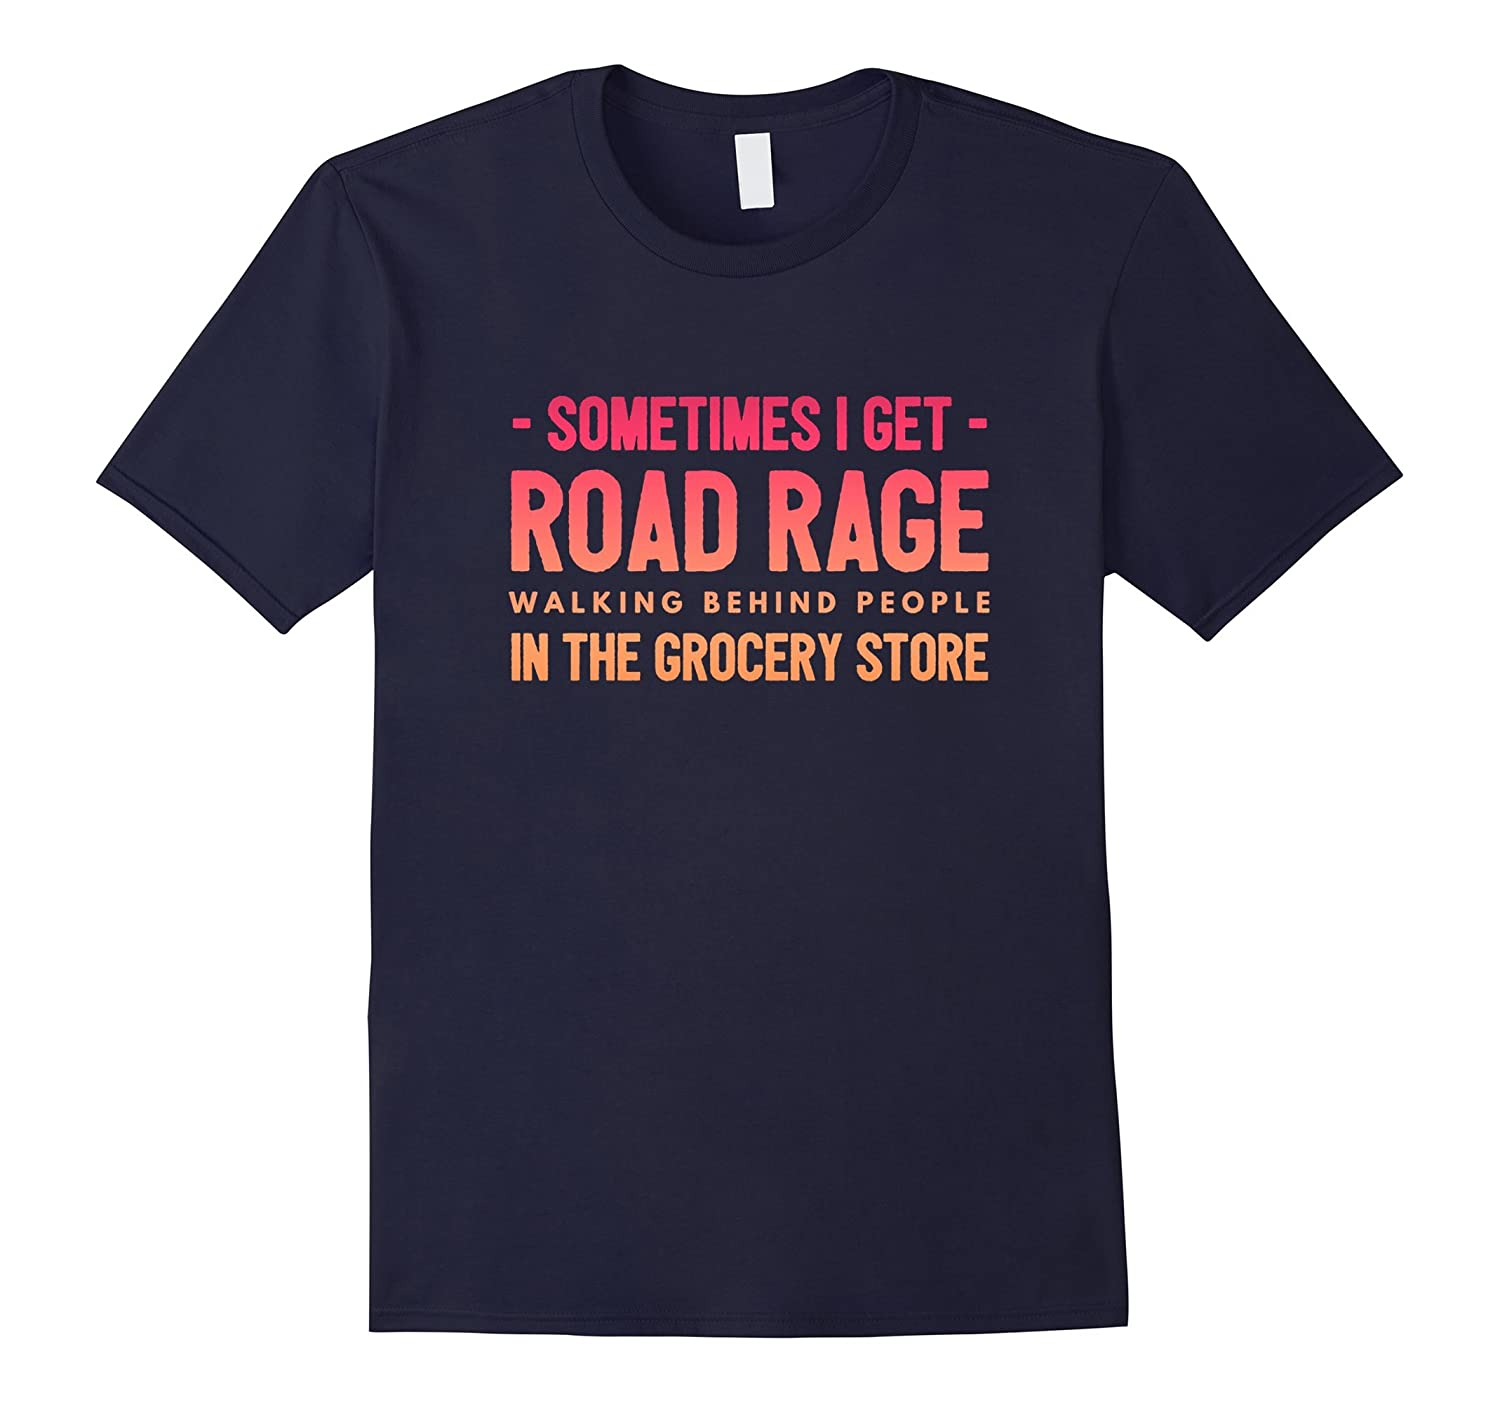 Sometimes I get road rage grocery shopping funny t-shirt-BN